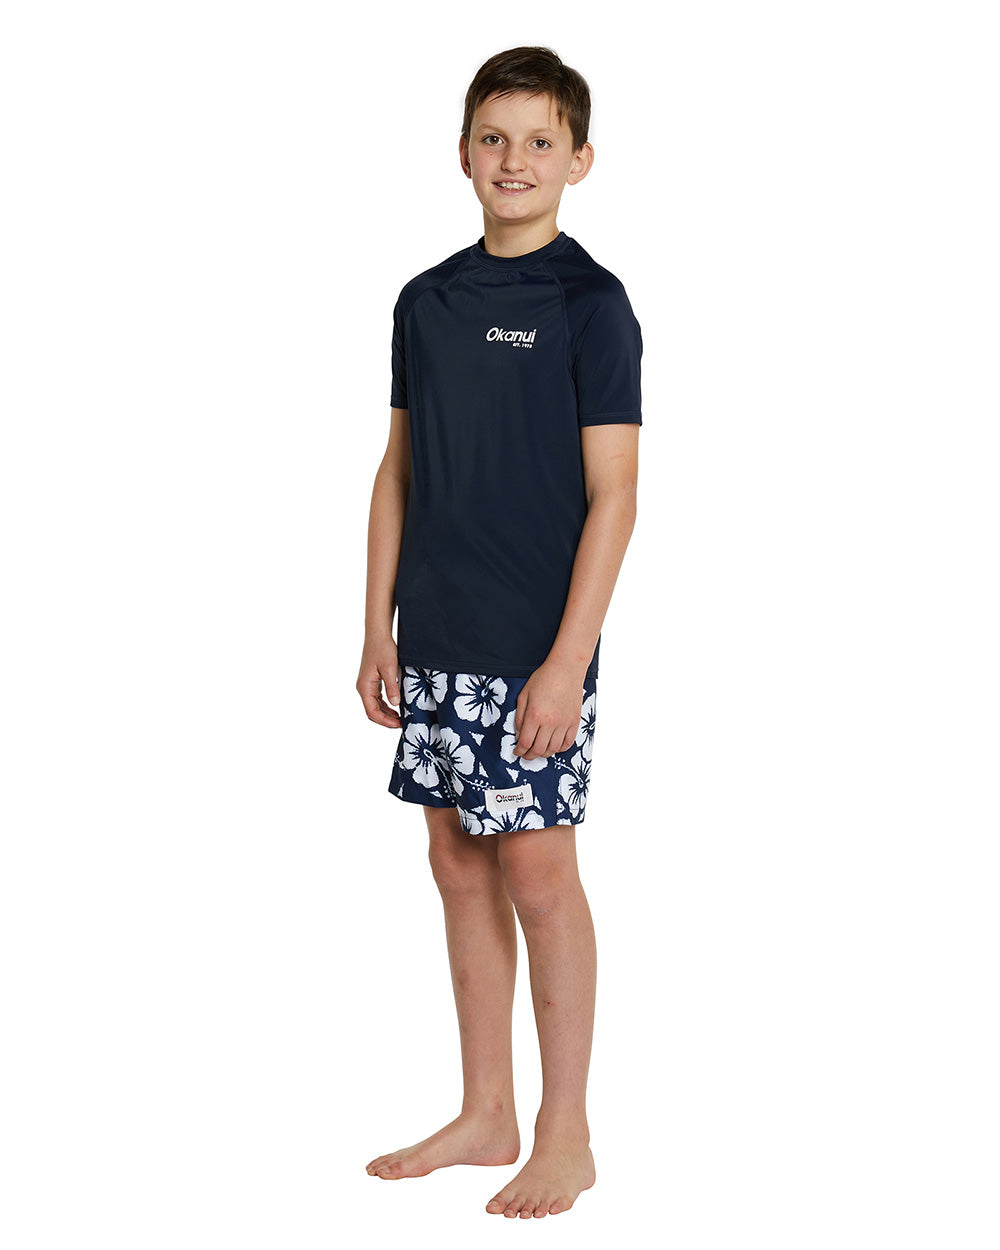 Kids Short Sleeve Rashie - Navy Logo Rash shirt